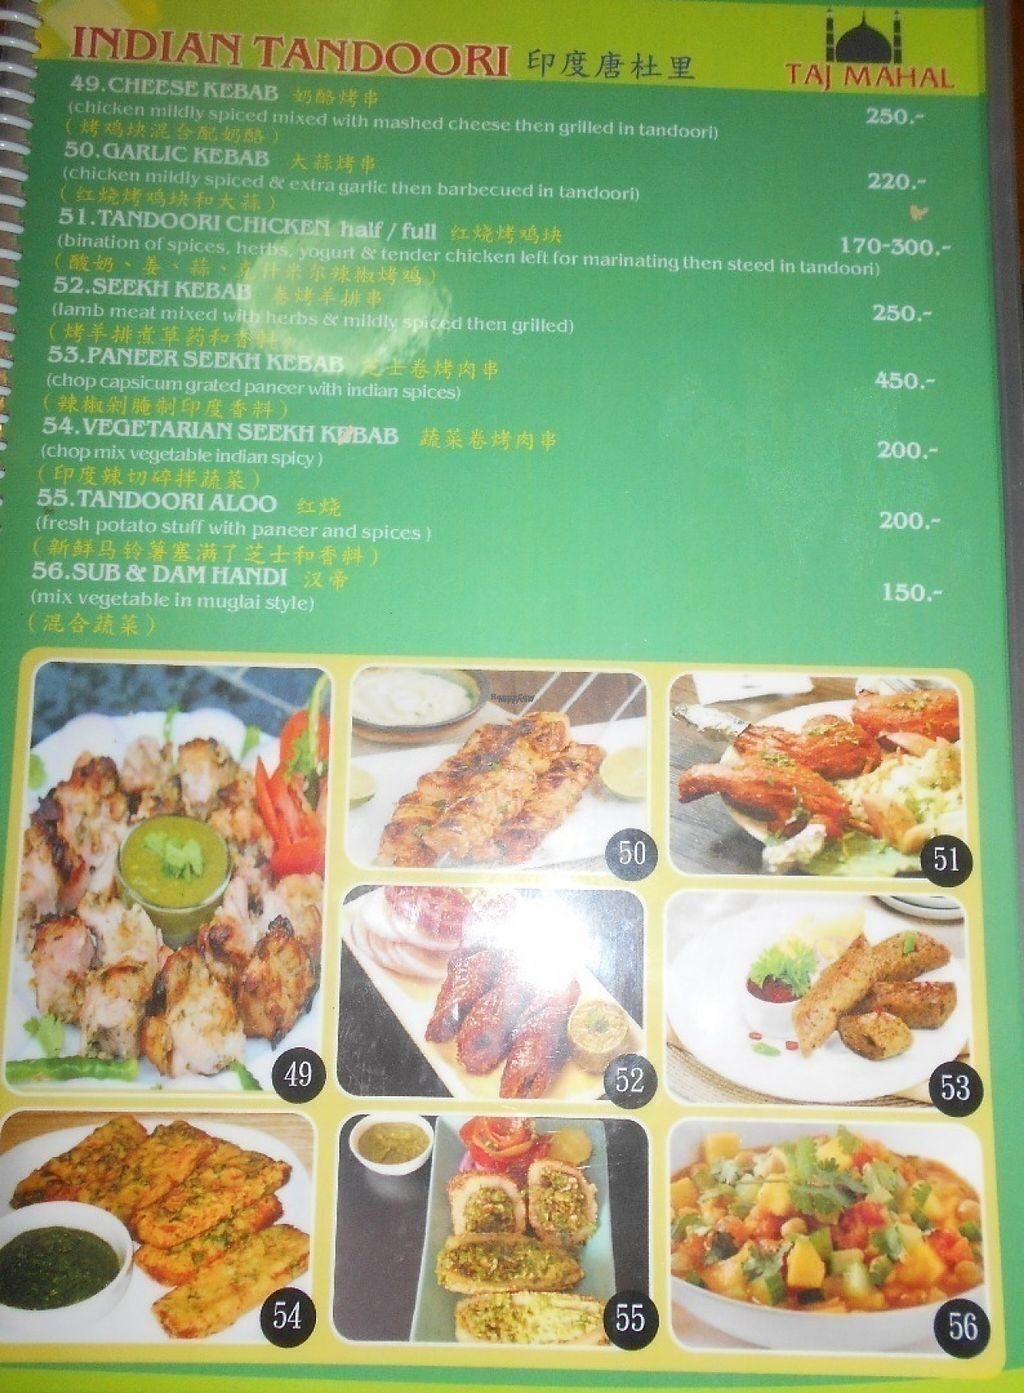 """Photo of Kashmir Indian Restaurant  by <a href=""""/members/profile/Kelly%20Kelly"""">Kelly Kelly</a> <br/>Kashmir Indian Restaurant <br/> August 5, 2016  - <a href='/contact/abuse/image/77951/165820'>Report</a>"""